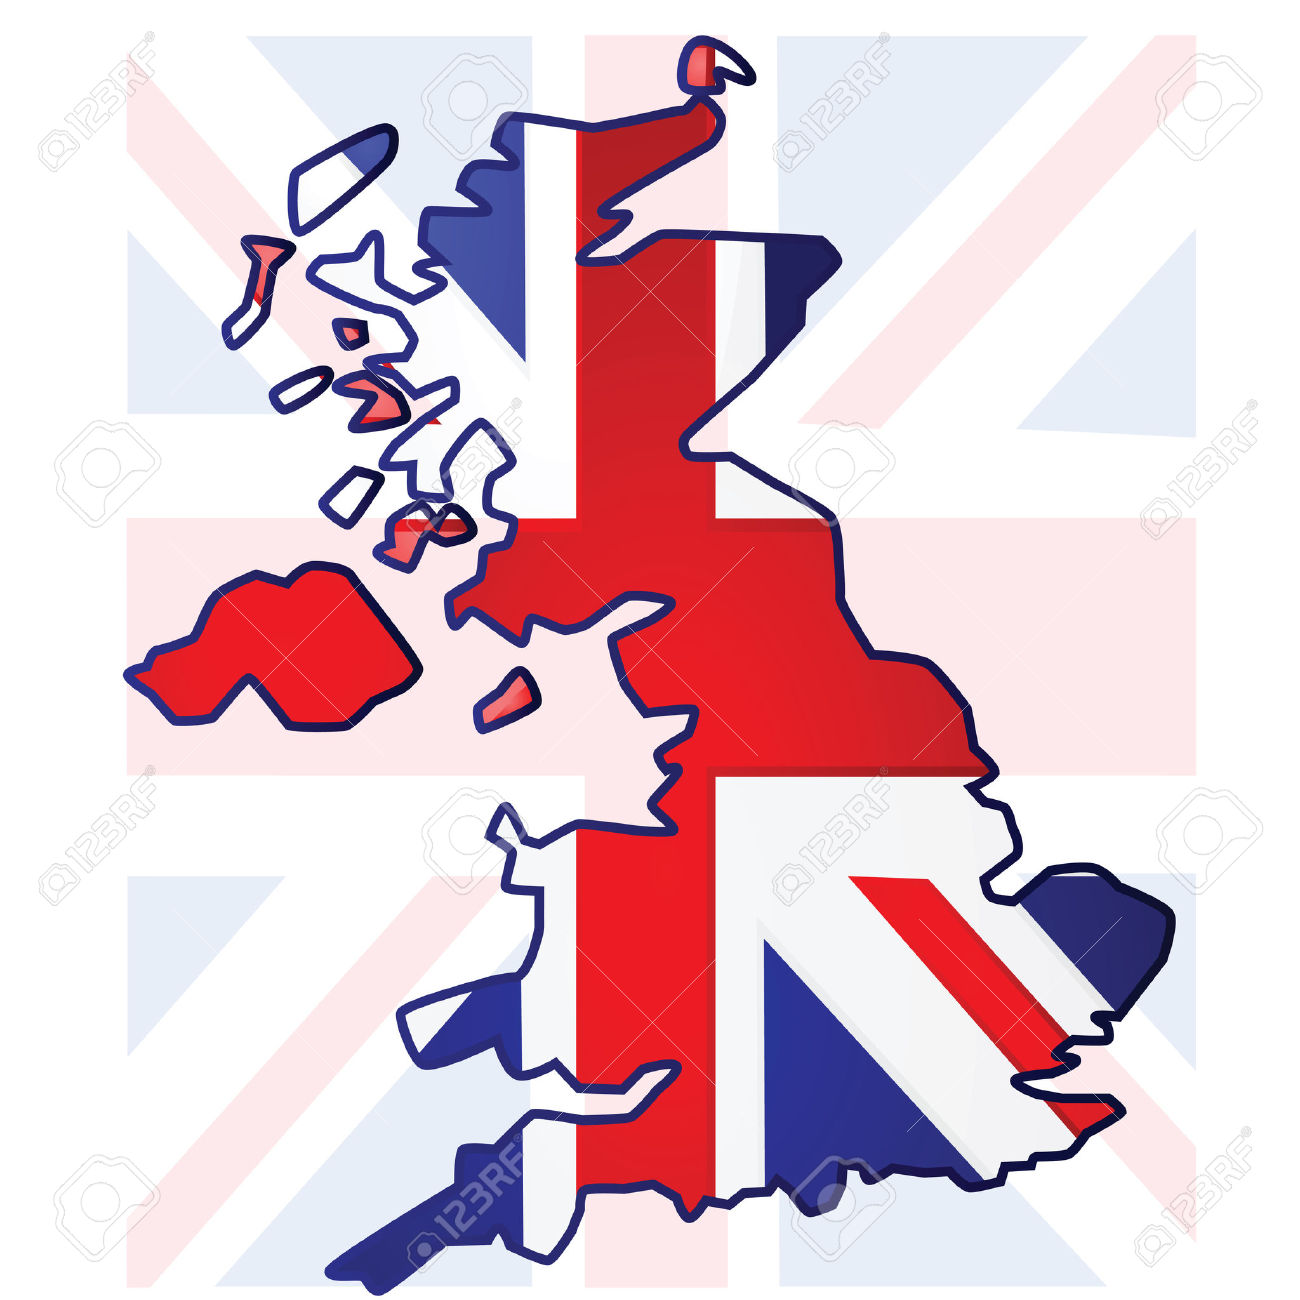 United Kingdom clipart #8, Download drawings